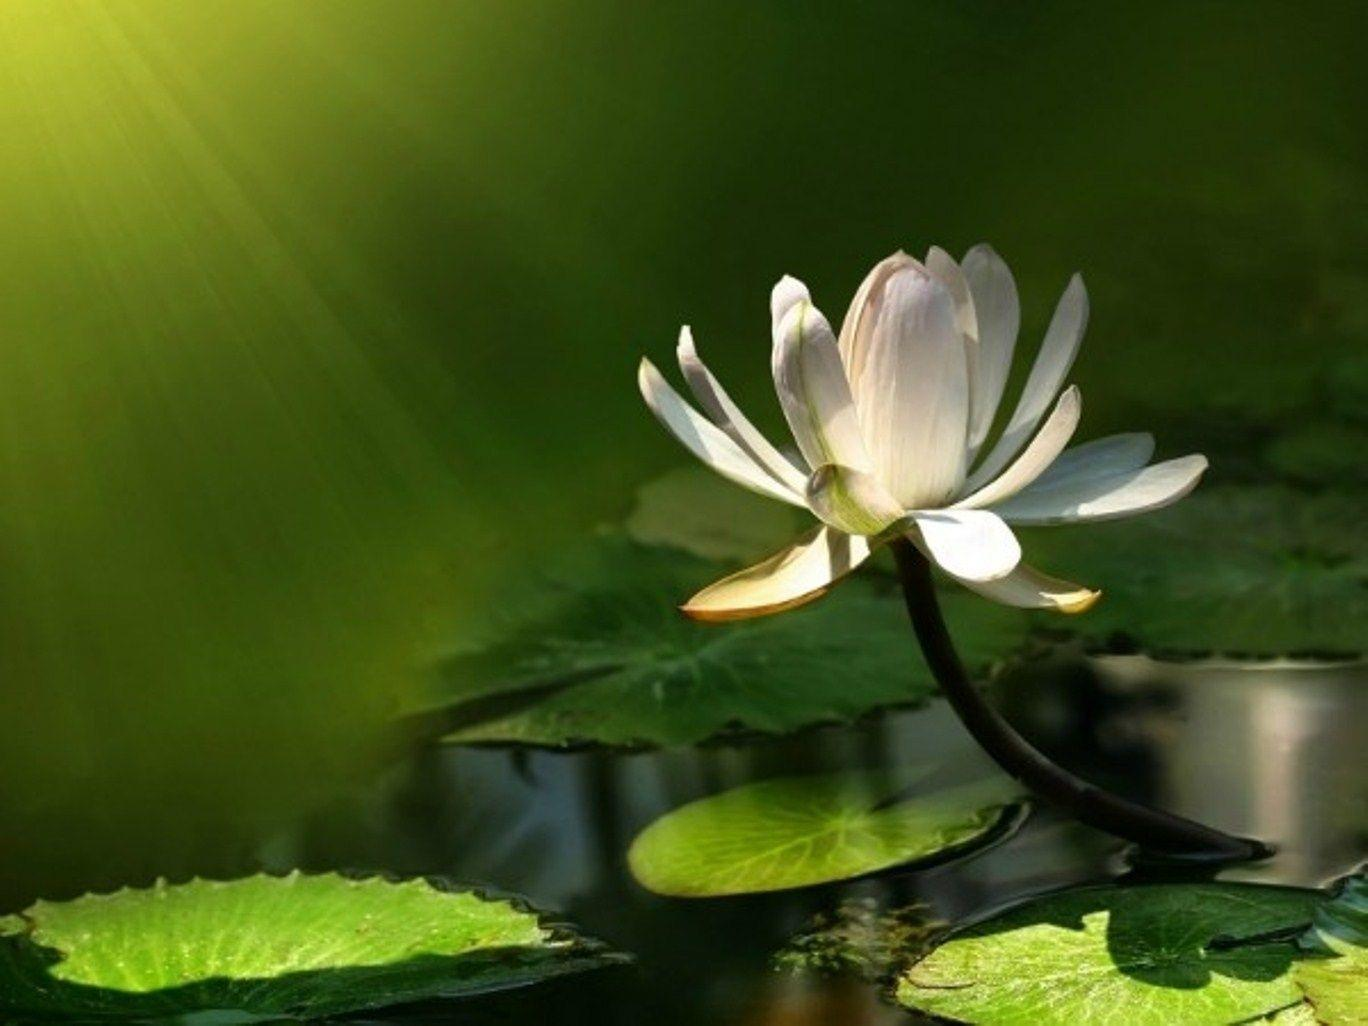 Lotus flower wallpapers wallpaper cave lotus flower desktop wallpapers lotus flower pictures cool izmirmasajfo